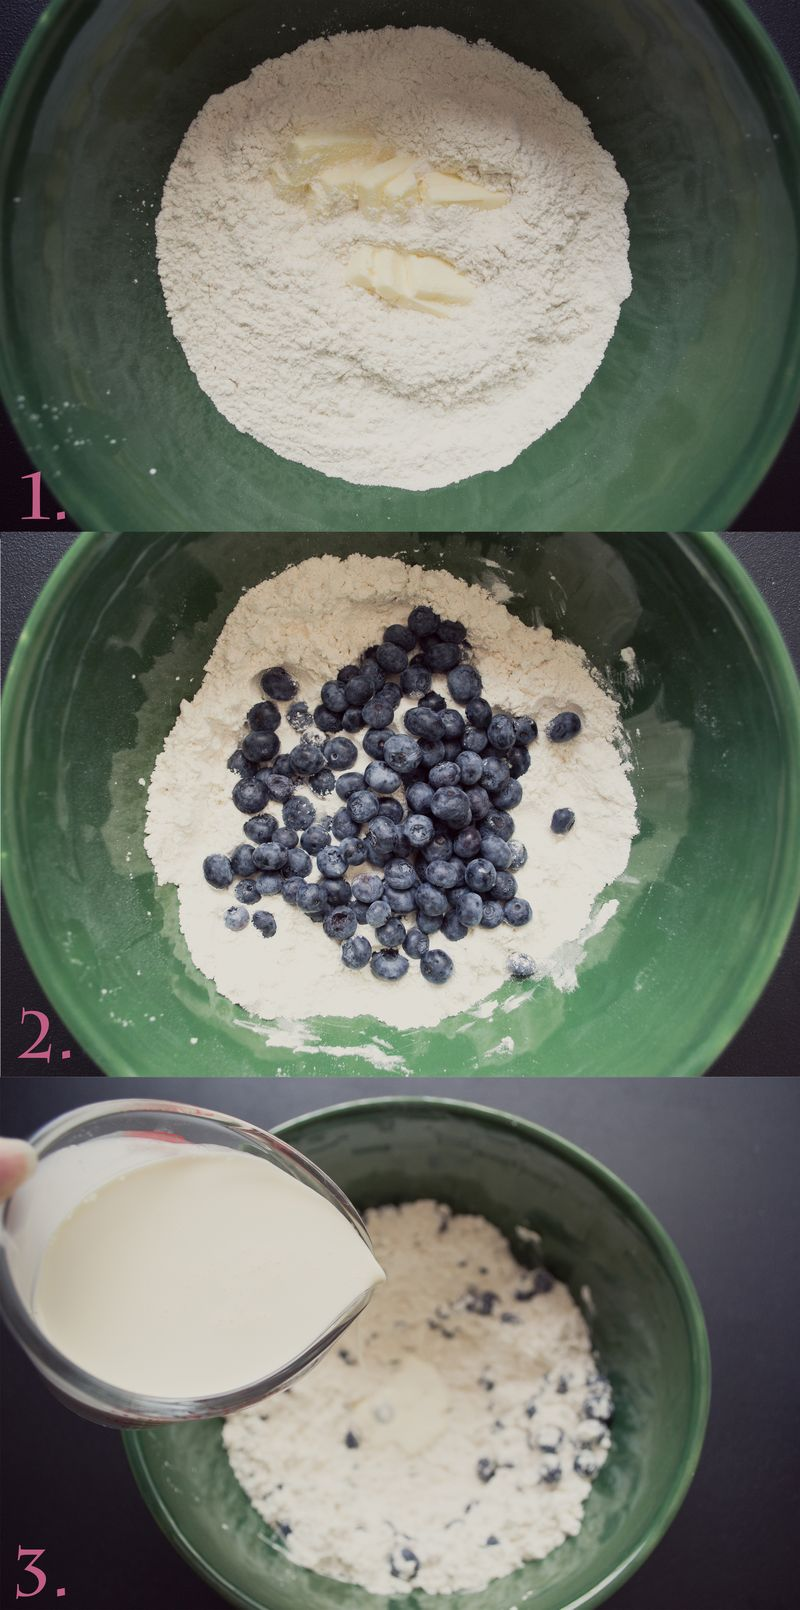 Blueberry Scone collage